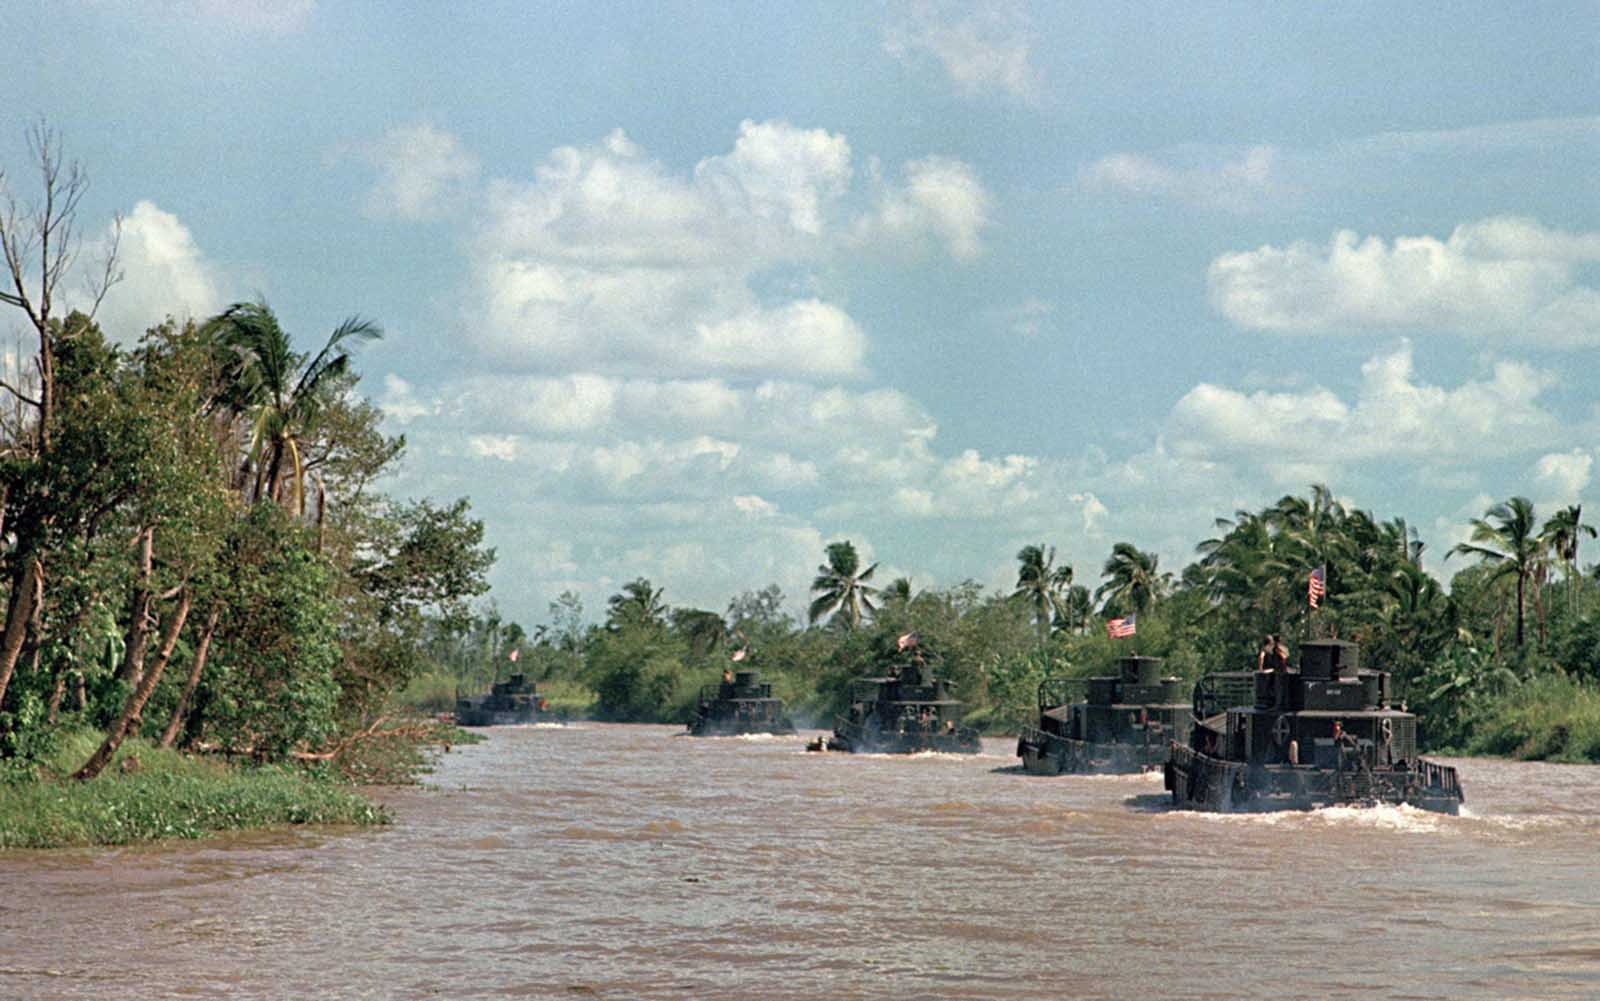 Assault boats in the Mobile Riverine Force of the U.S. 9th Infantry Division glide along the My Tho River, an arm of the Mekong Delta near Dong Tam, 35 miles southwest of Saigon, on March 15, 1968.